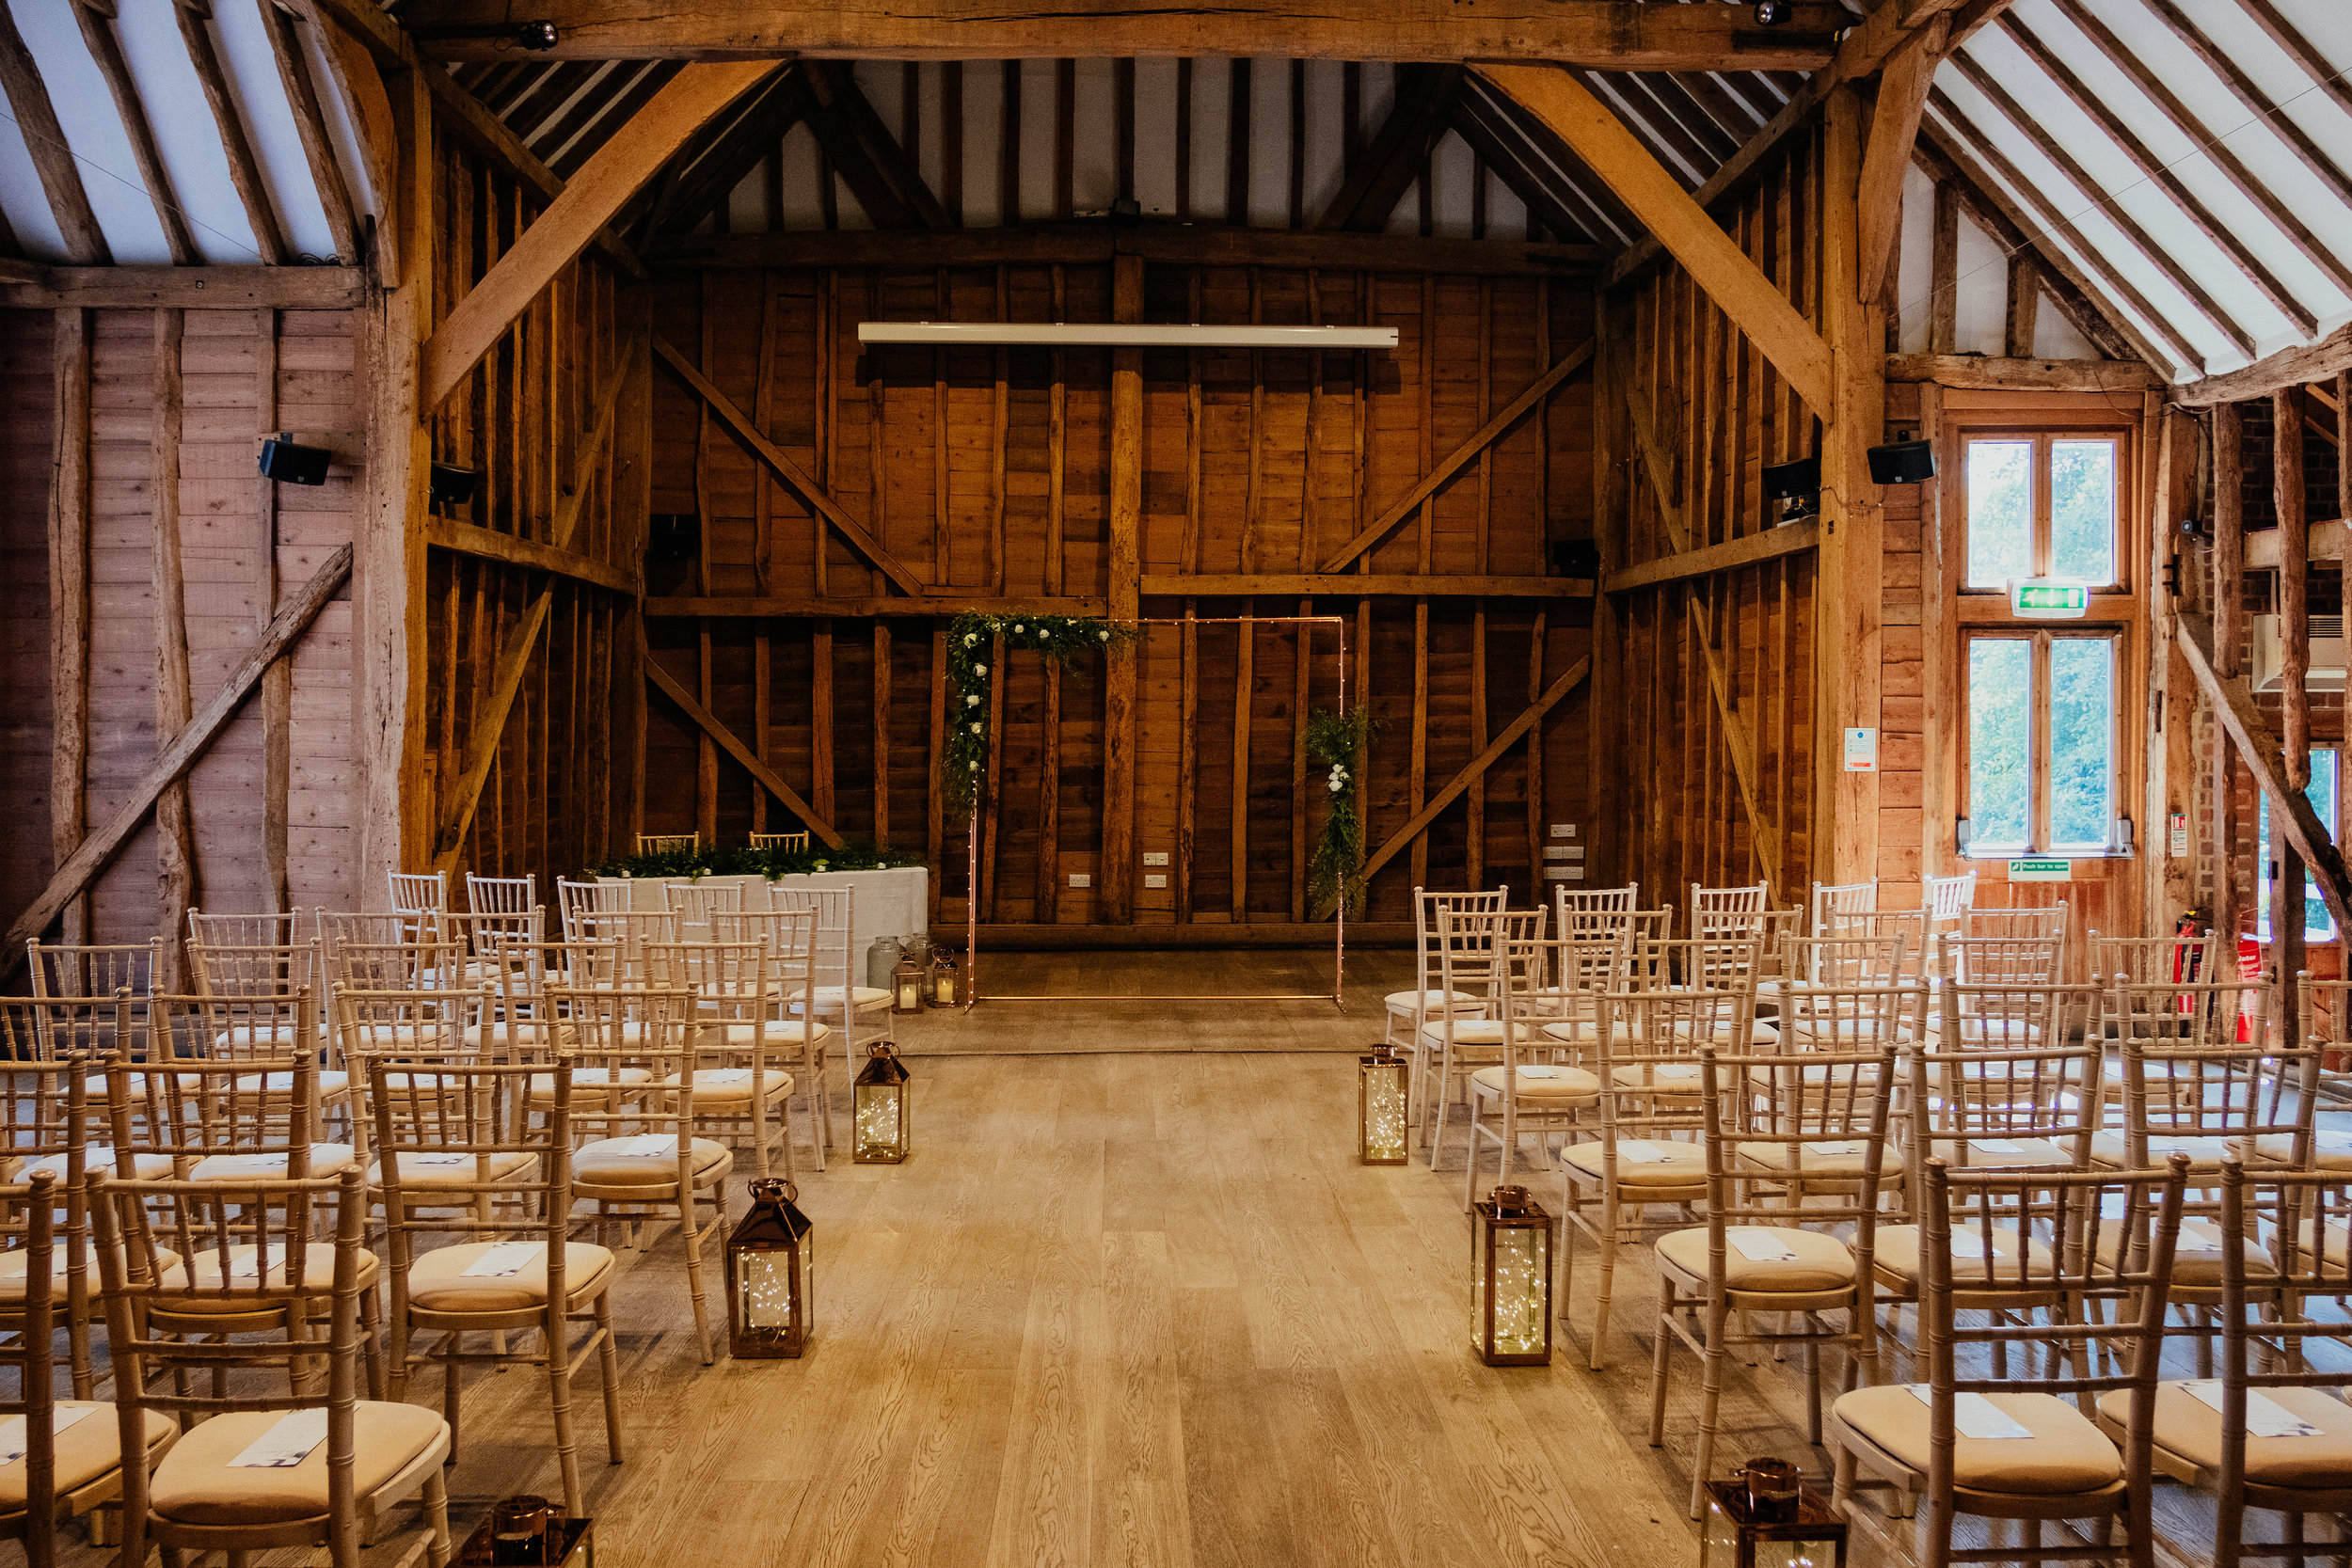 Tewin Bury Farm wedding ceremony in Tythe Barn